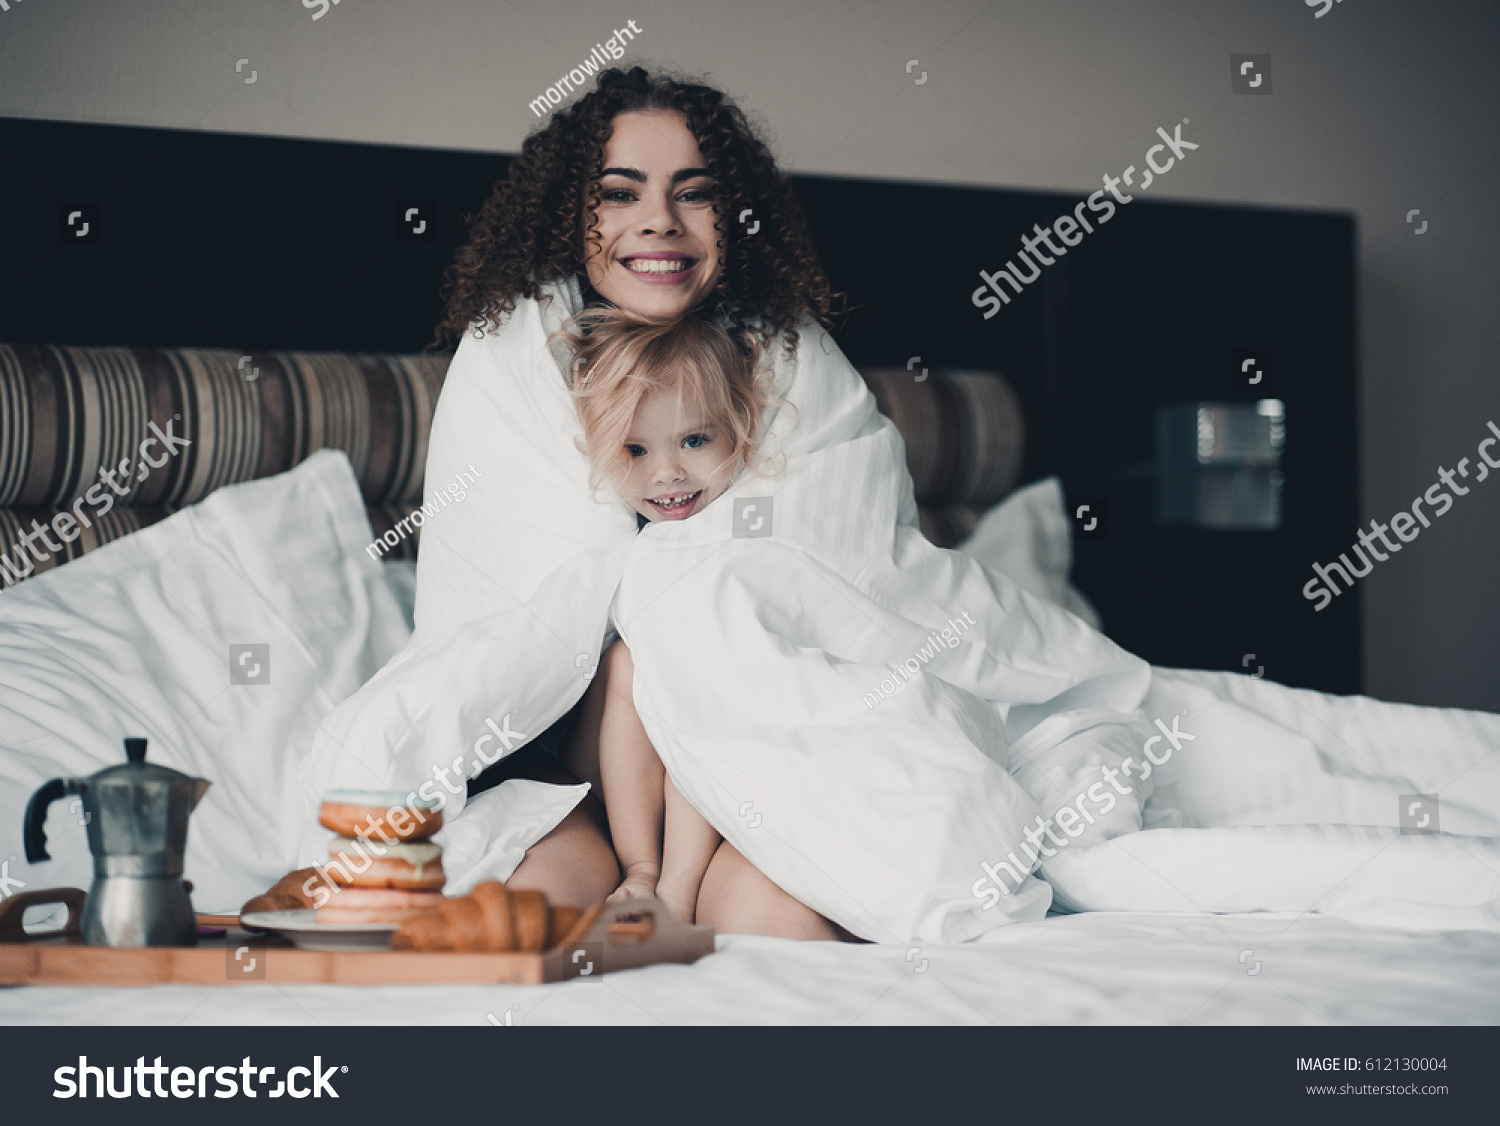 Baby bed for 2 year old - Smiling Mother Playing With Her Baby Girl 1 2 Year Old In Bed With Duvet